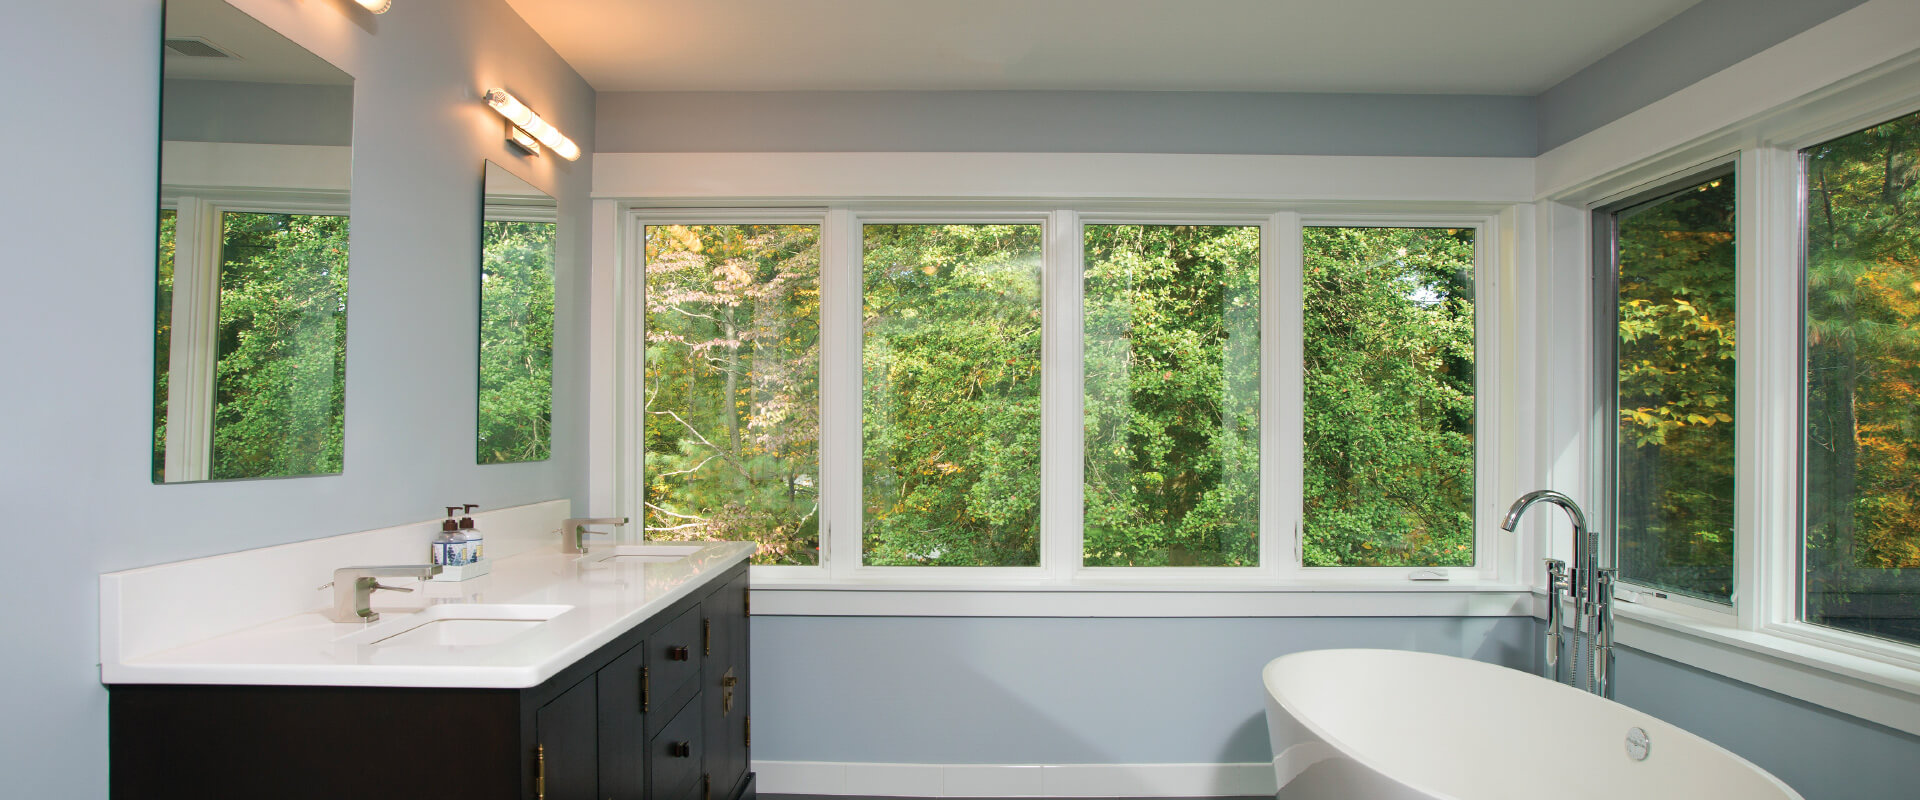 Forgent Series crank-out casements with a Cloud interior color that is integral to the Glastra material.